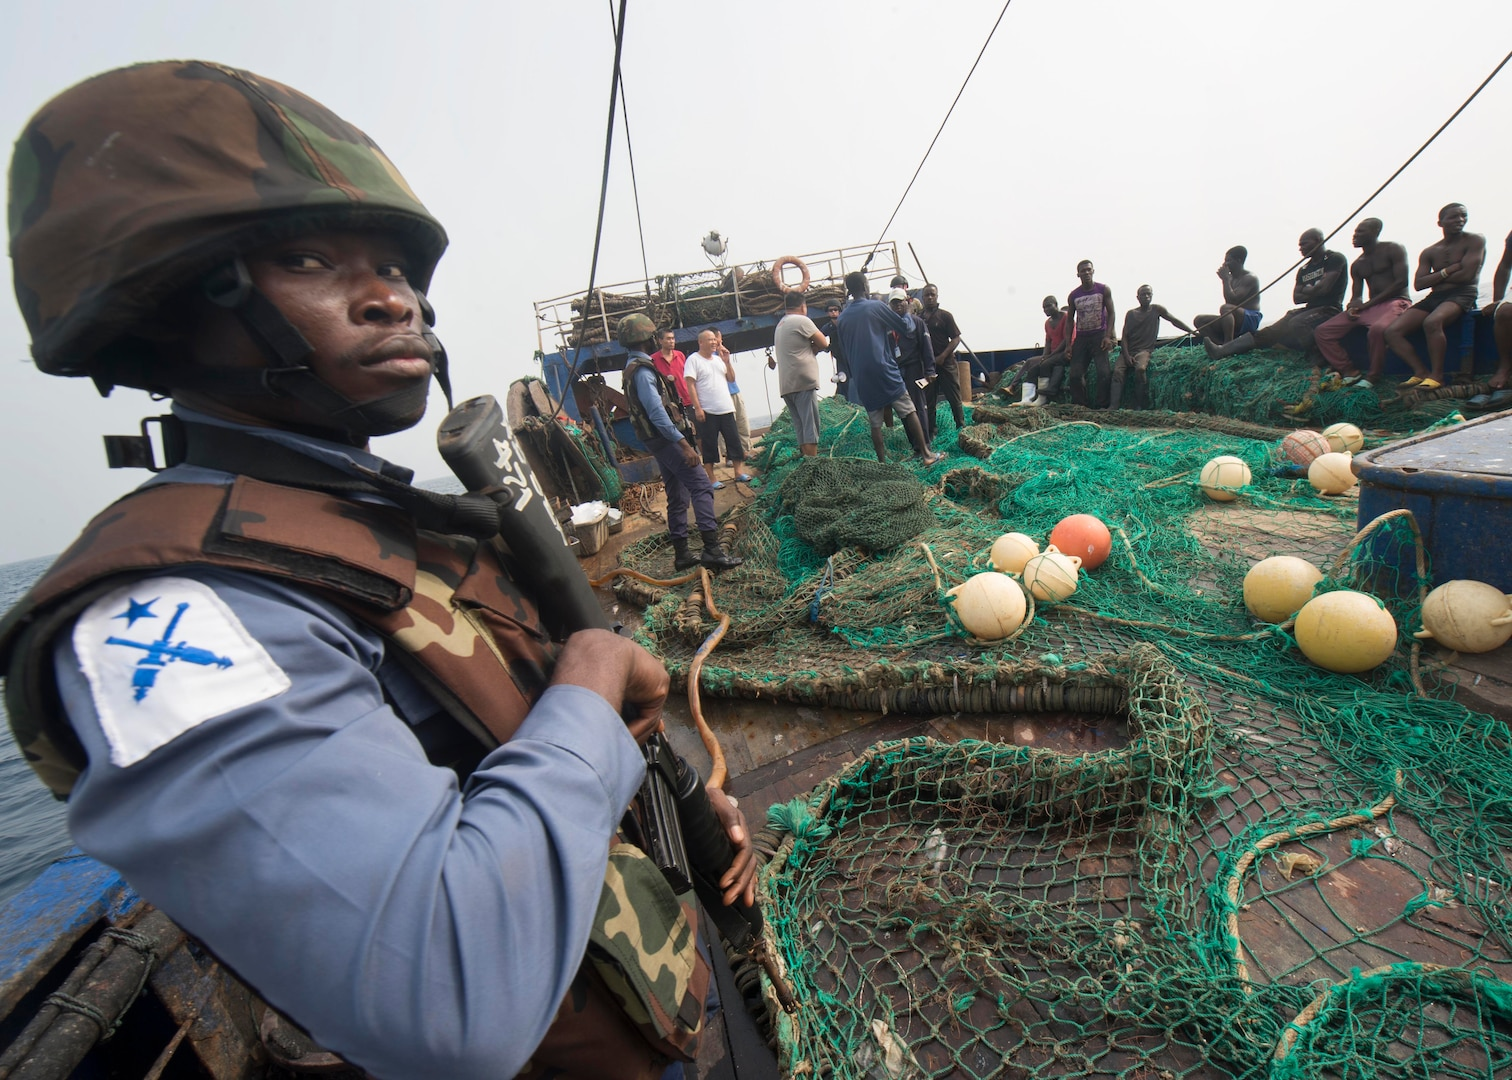 In February 2016, collaboration among four West African nations, with assistance from the U.S. and France, allowed African navies to track and interdict a hijacked vessel in the Gulf of Guinea.